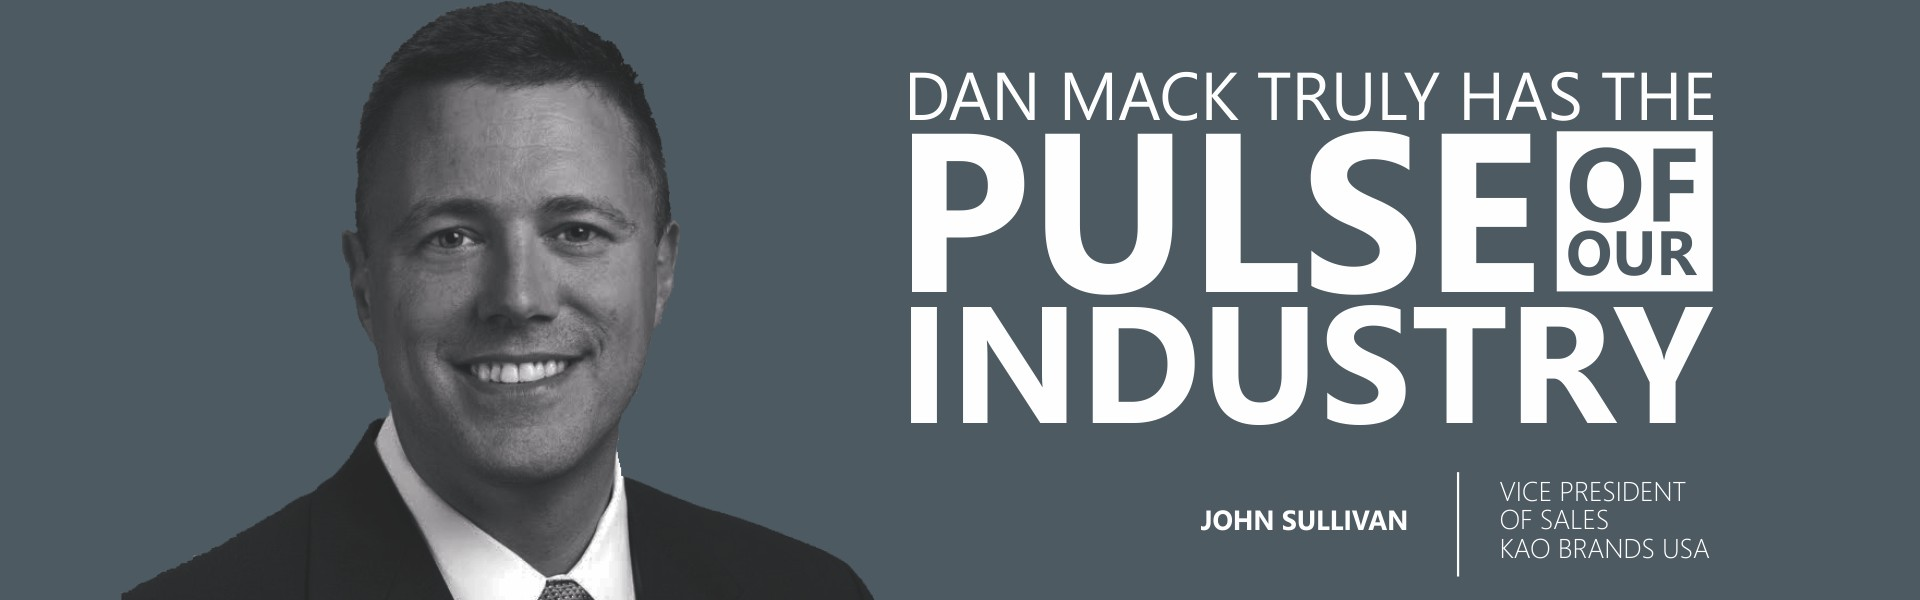 John Sullivan of KAO Brands USA on Dan Mack